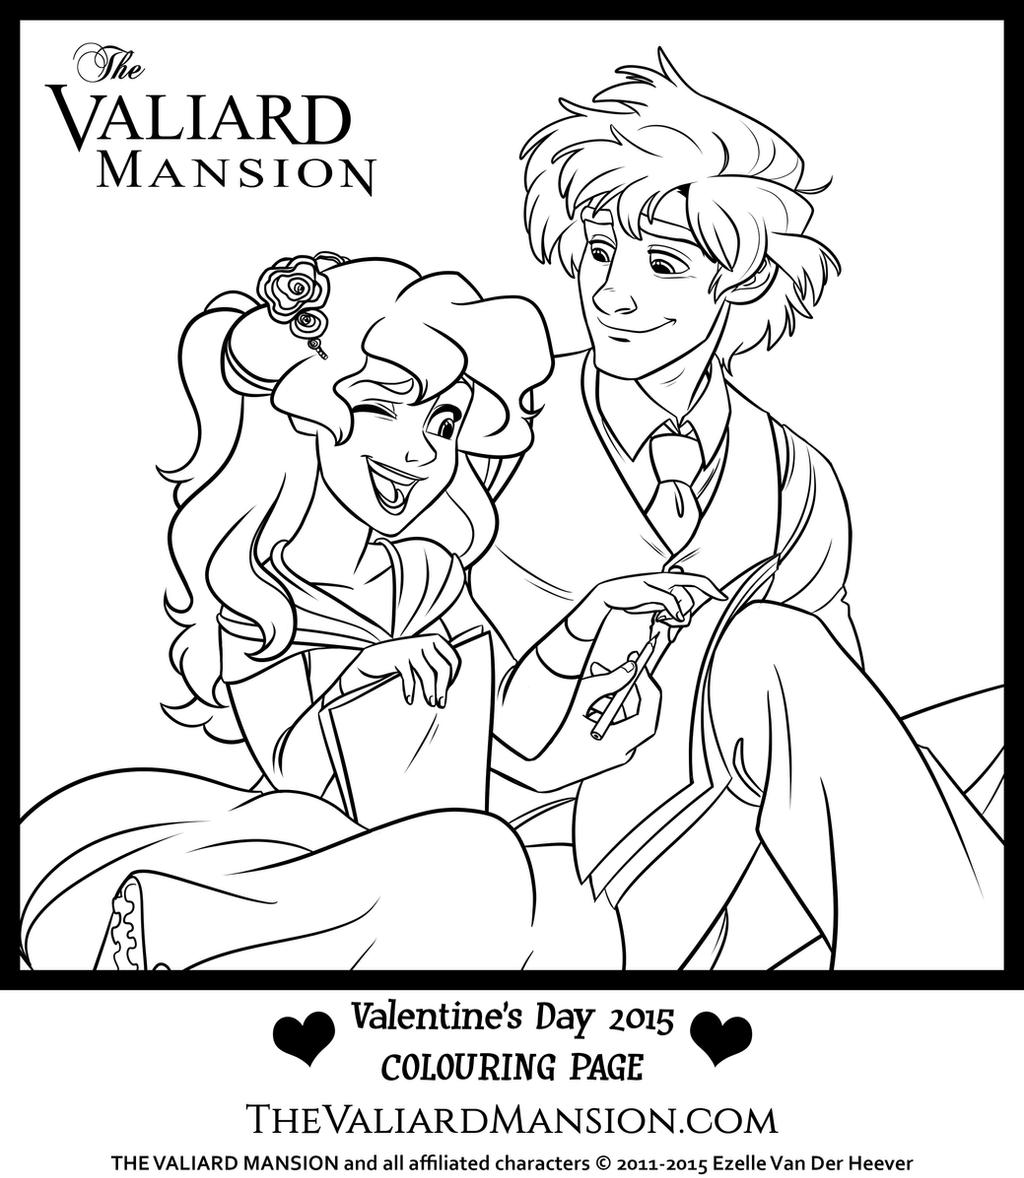 ruth and theodore colouring page by the ez on deviantart